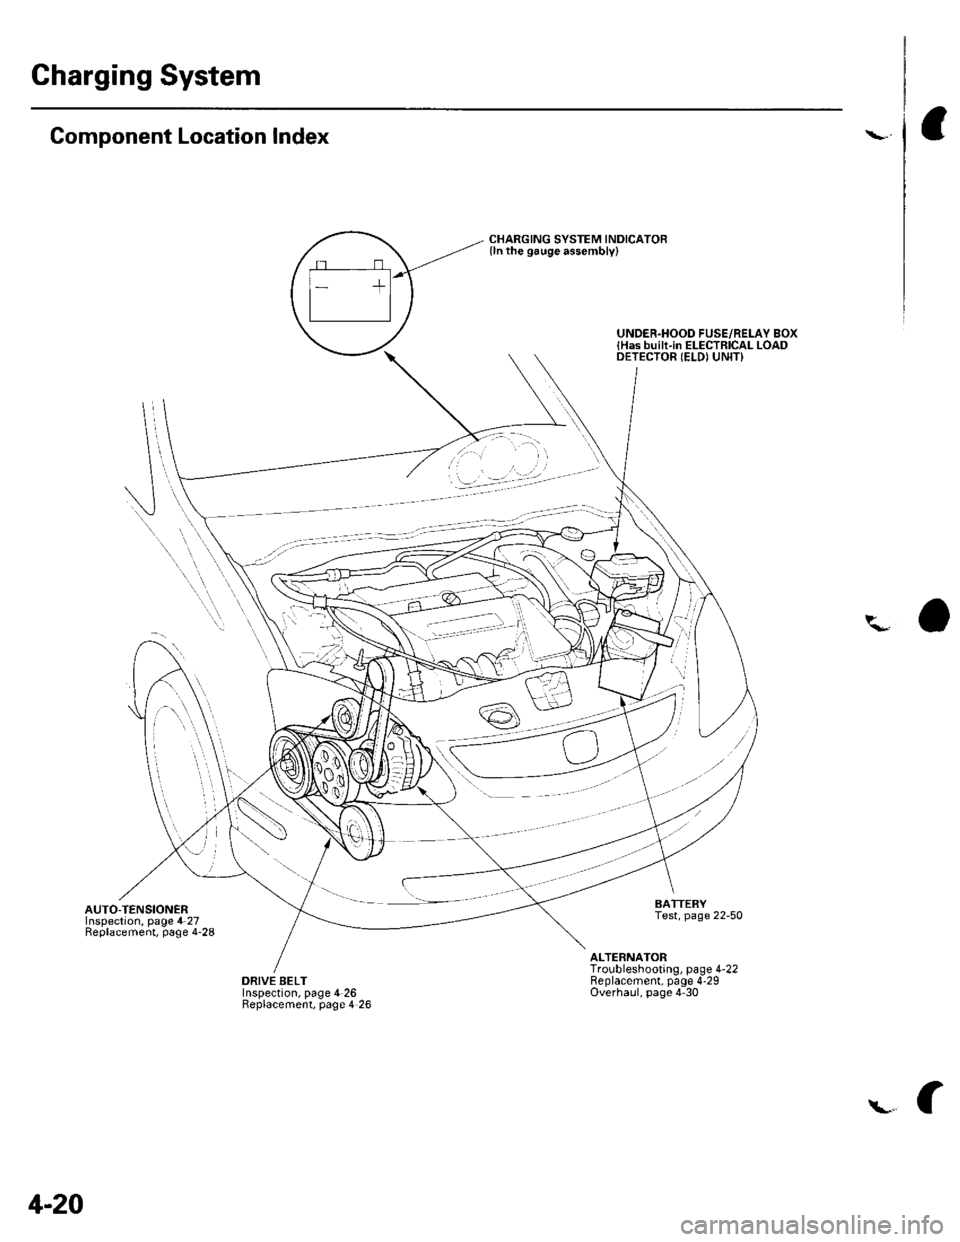 Battery Honda Civic 2002 7g Workshop Manual Under Hood Fuse Relay Box Page 55